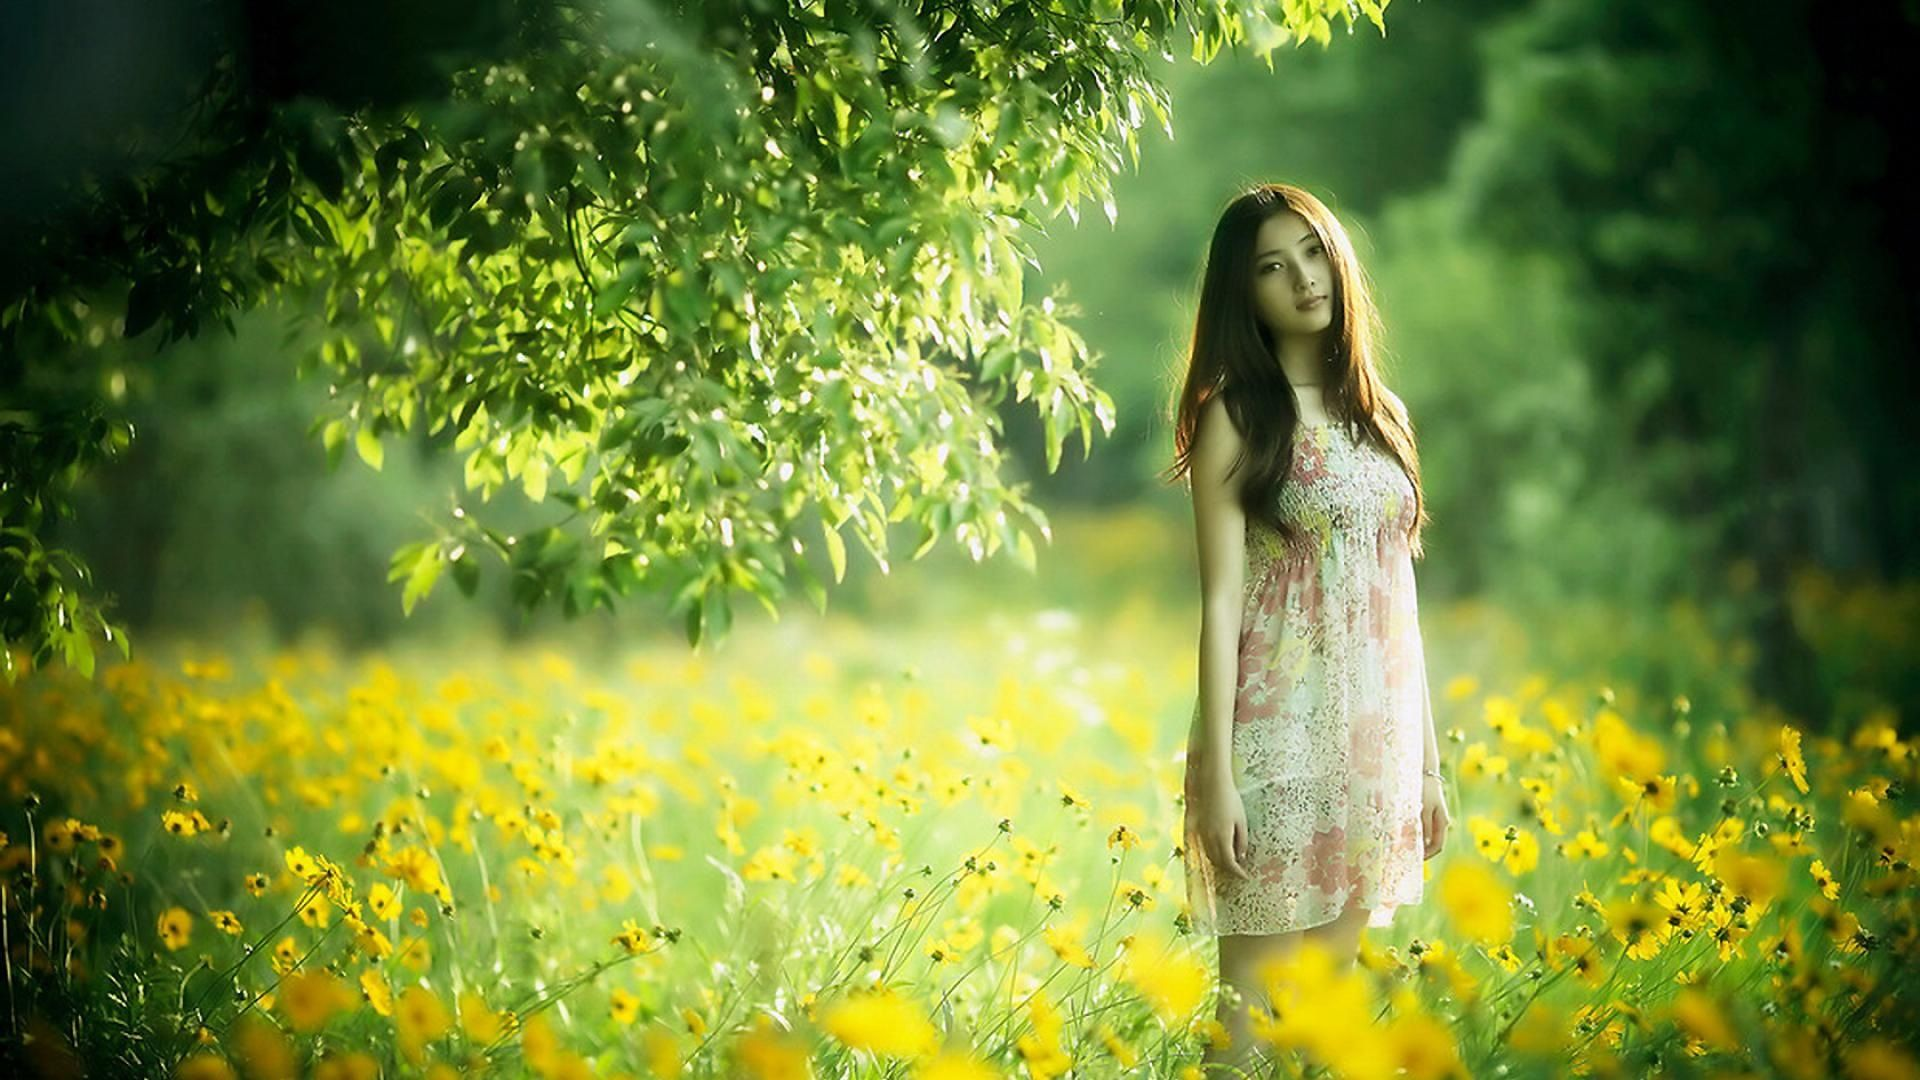 Lonely Girl Pics Images Quotes 1920x1080 Wallpapers 38